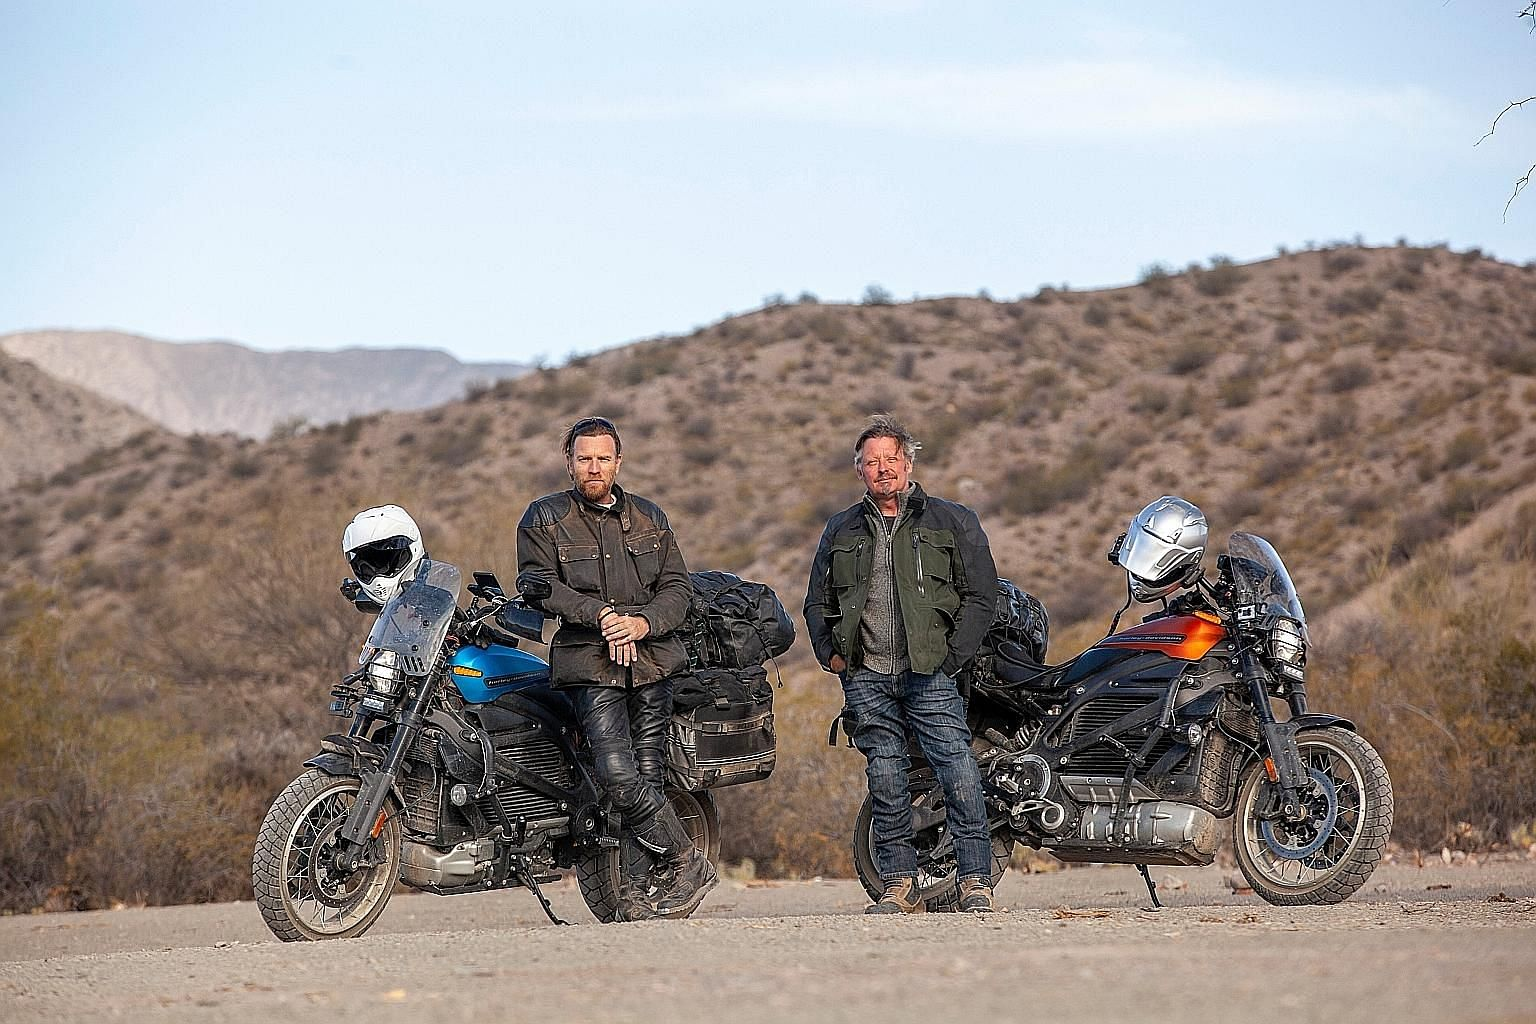 In Long Way Up, friends and motorbike enthusiasts Ewan McGregor (far left) and Charley Boorman (left) go on a motorcycle trip that takes them from Patagonia in Argentina to Los Angeles.